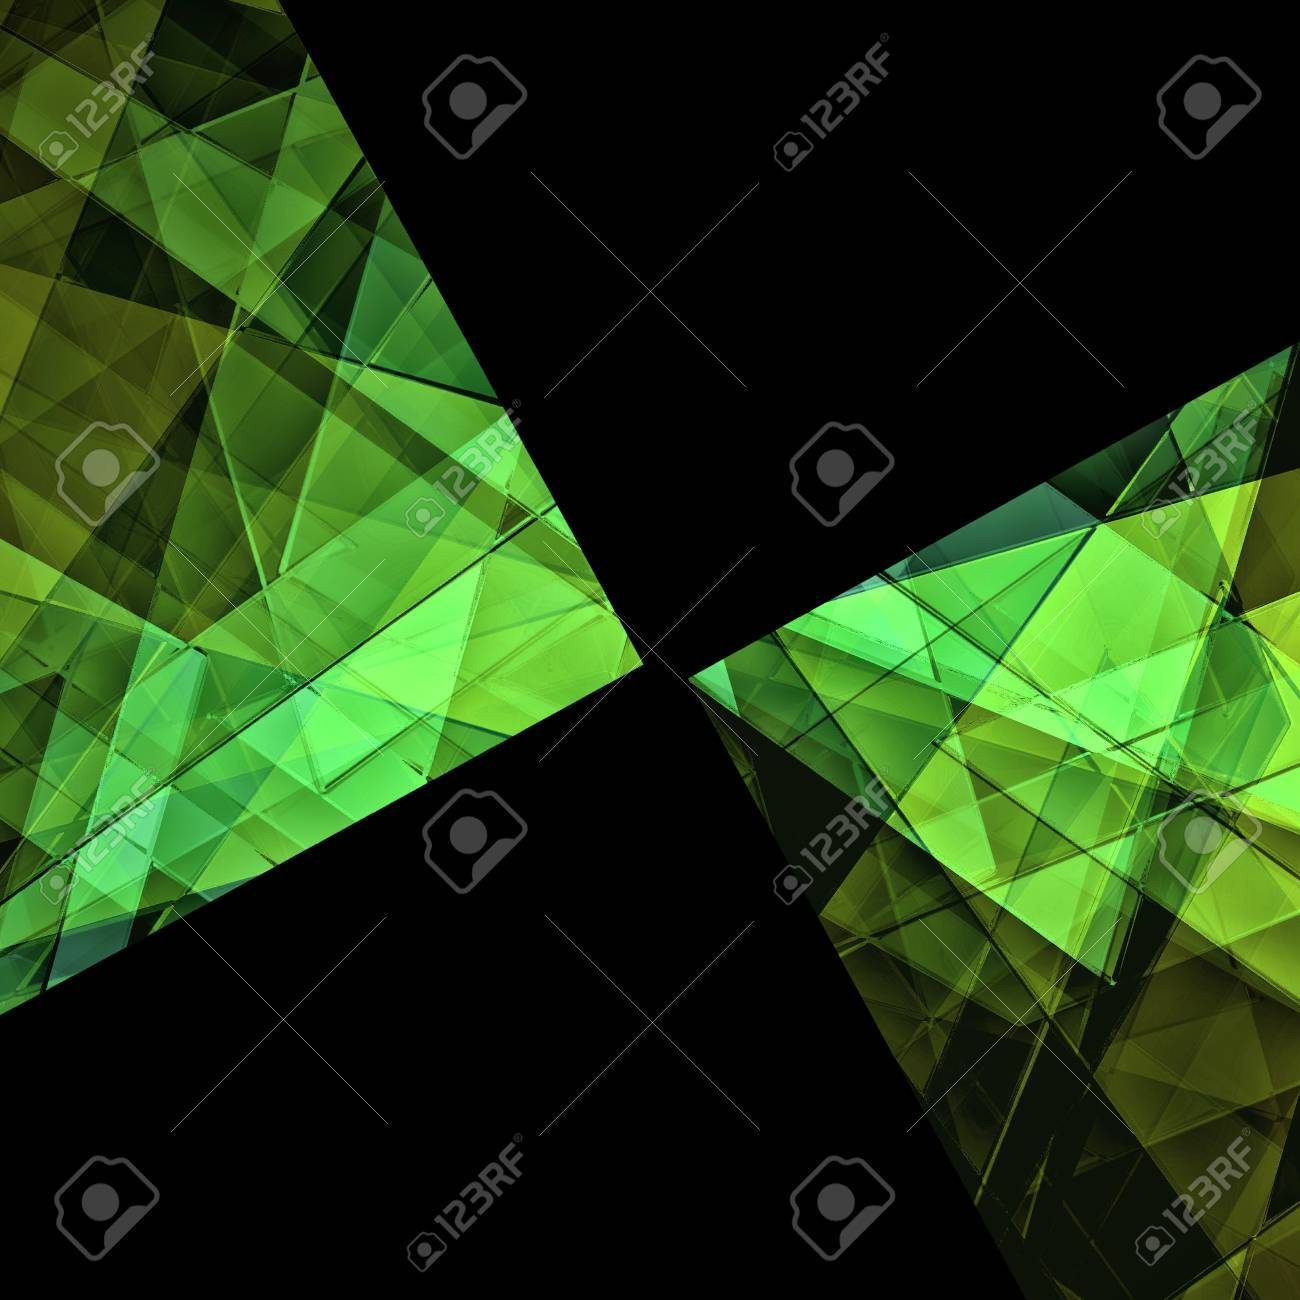 abstract geometric background Stock Photo - 20894748